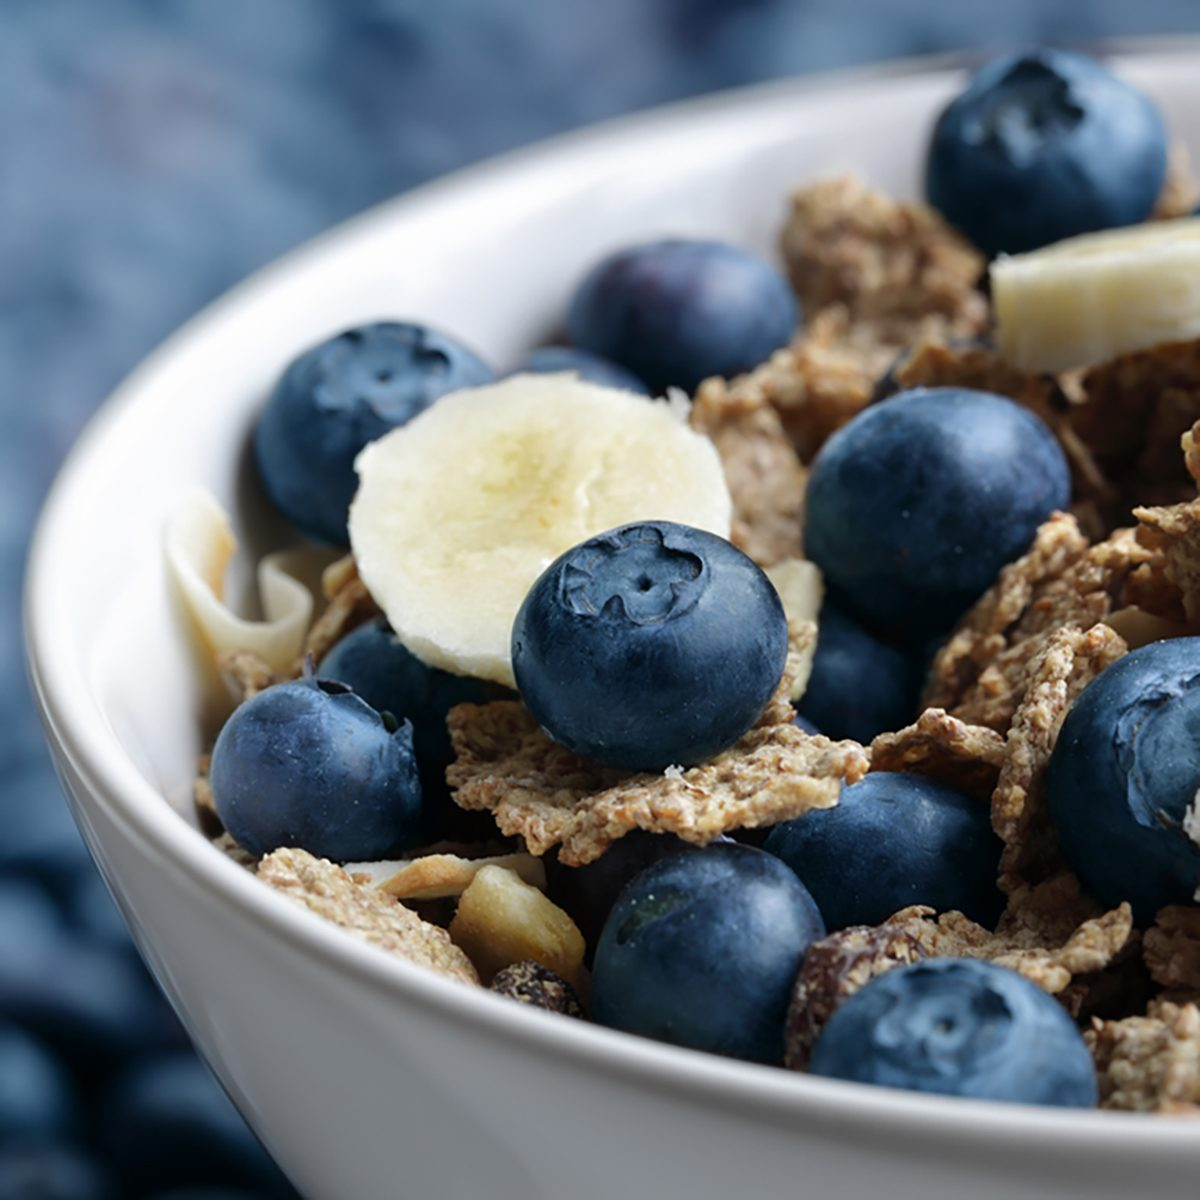 Healthy breakfast with high fibre bran flakes, blueberry and banana